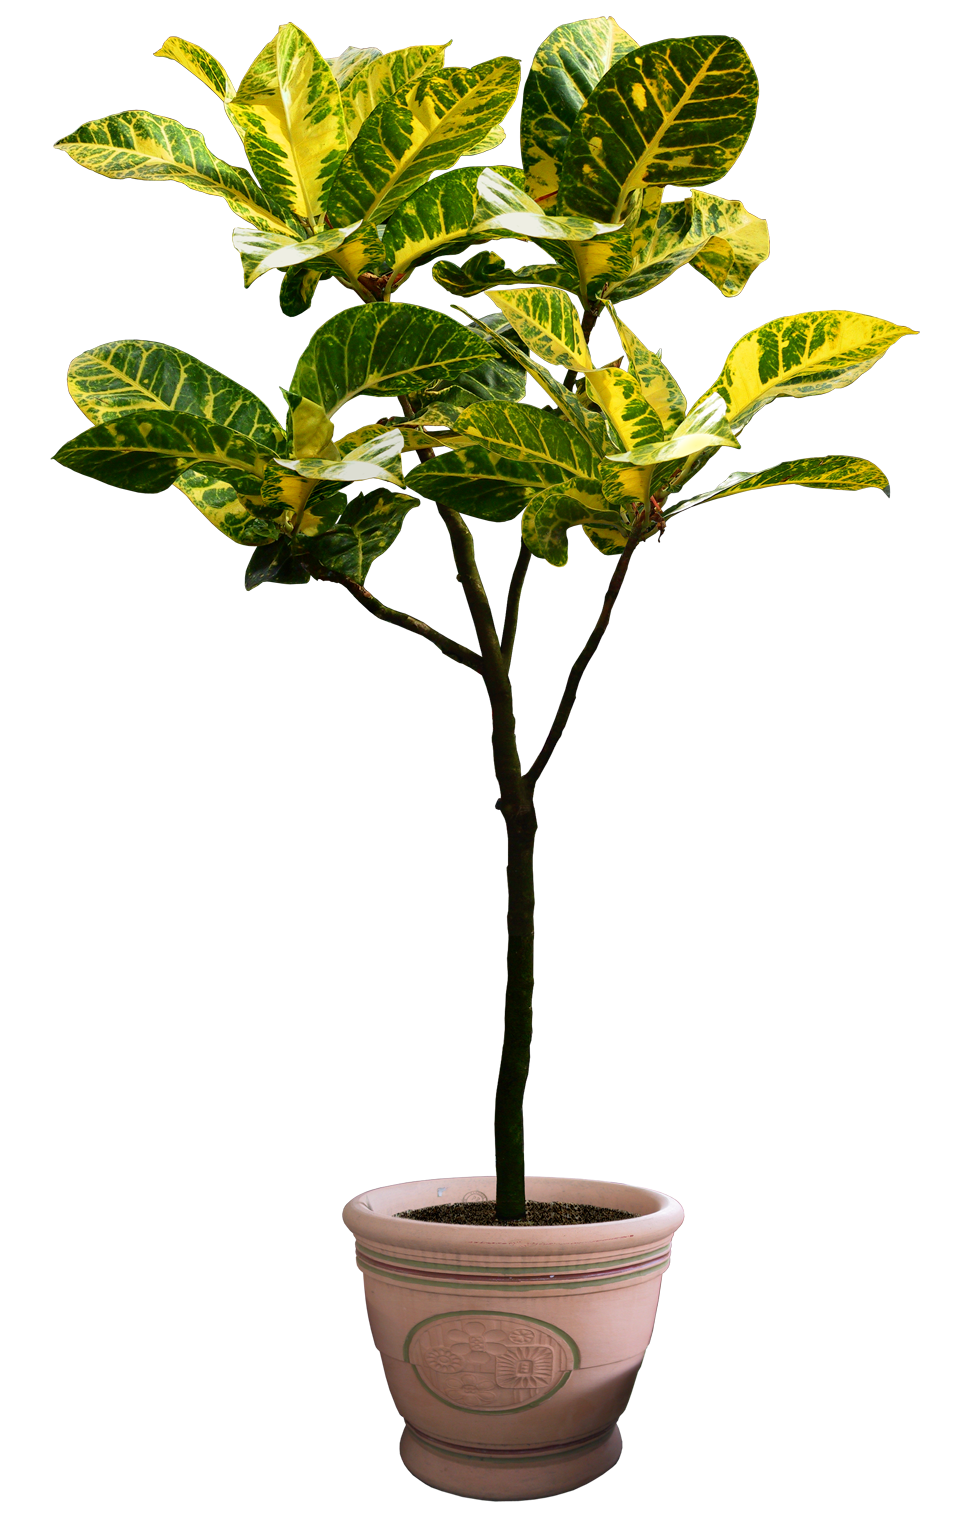 Pleasures in helping others beautiful transparent plants for Plante a planter